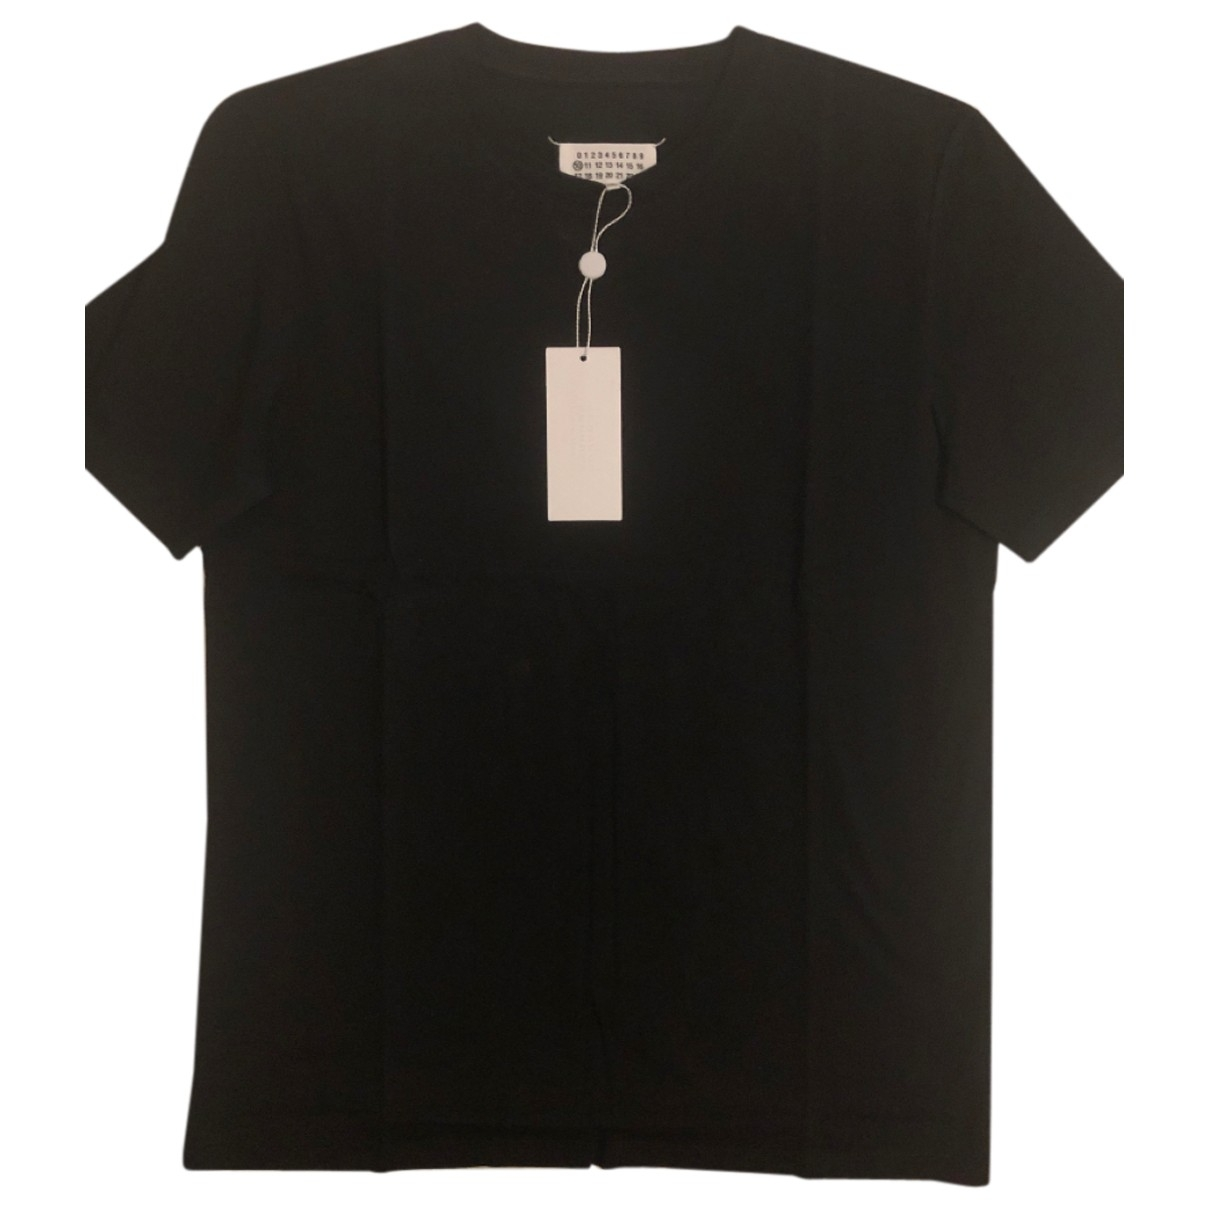 Maison Martin Margiela \N Black Cotton T-shirts for Men L International